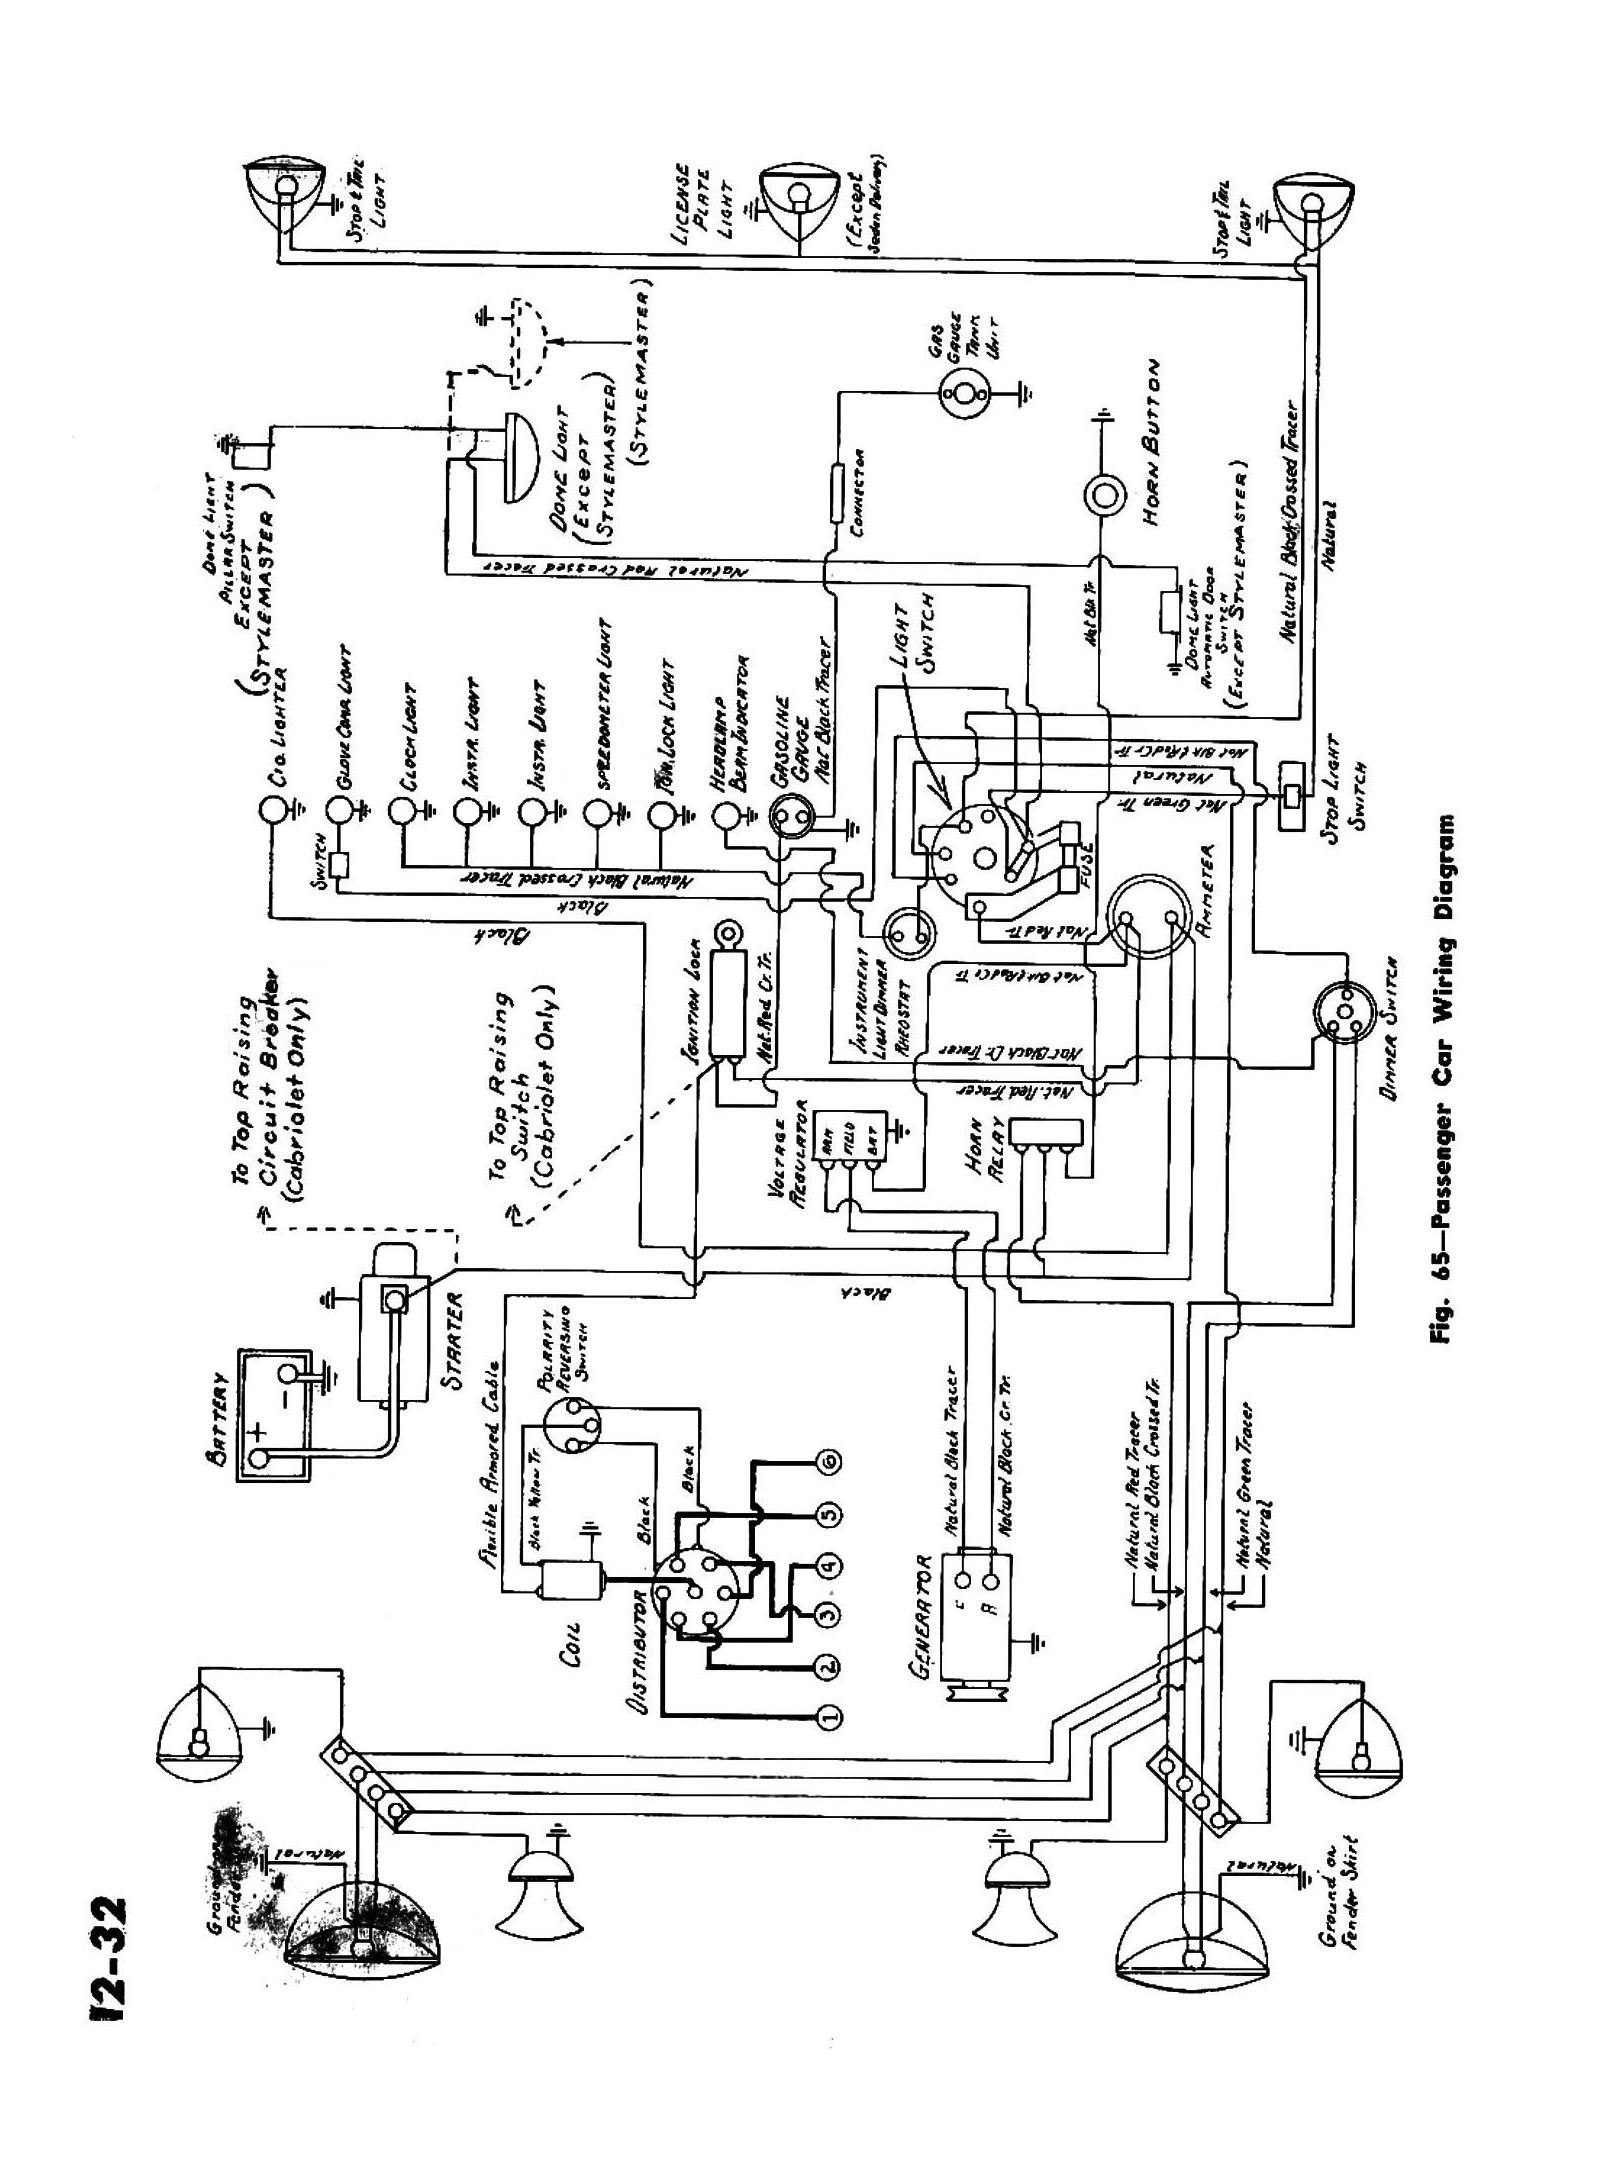 45car chevy wiring diagrams For a Three Speed Fan Switch Wiring Diagram Simplified at readyjetset.co